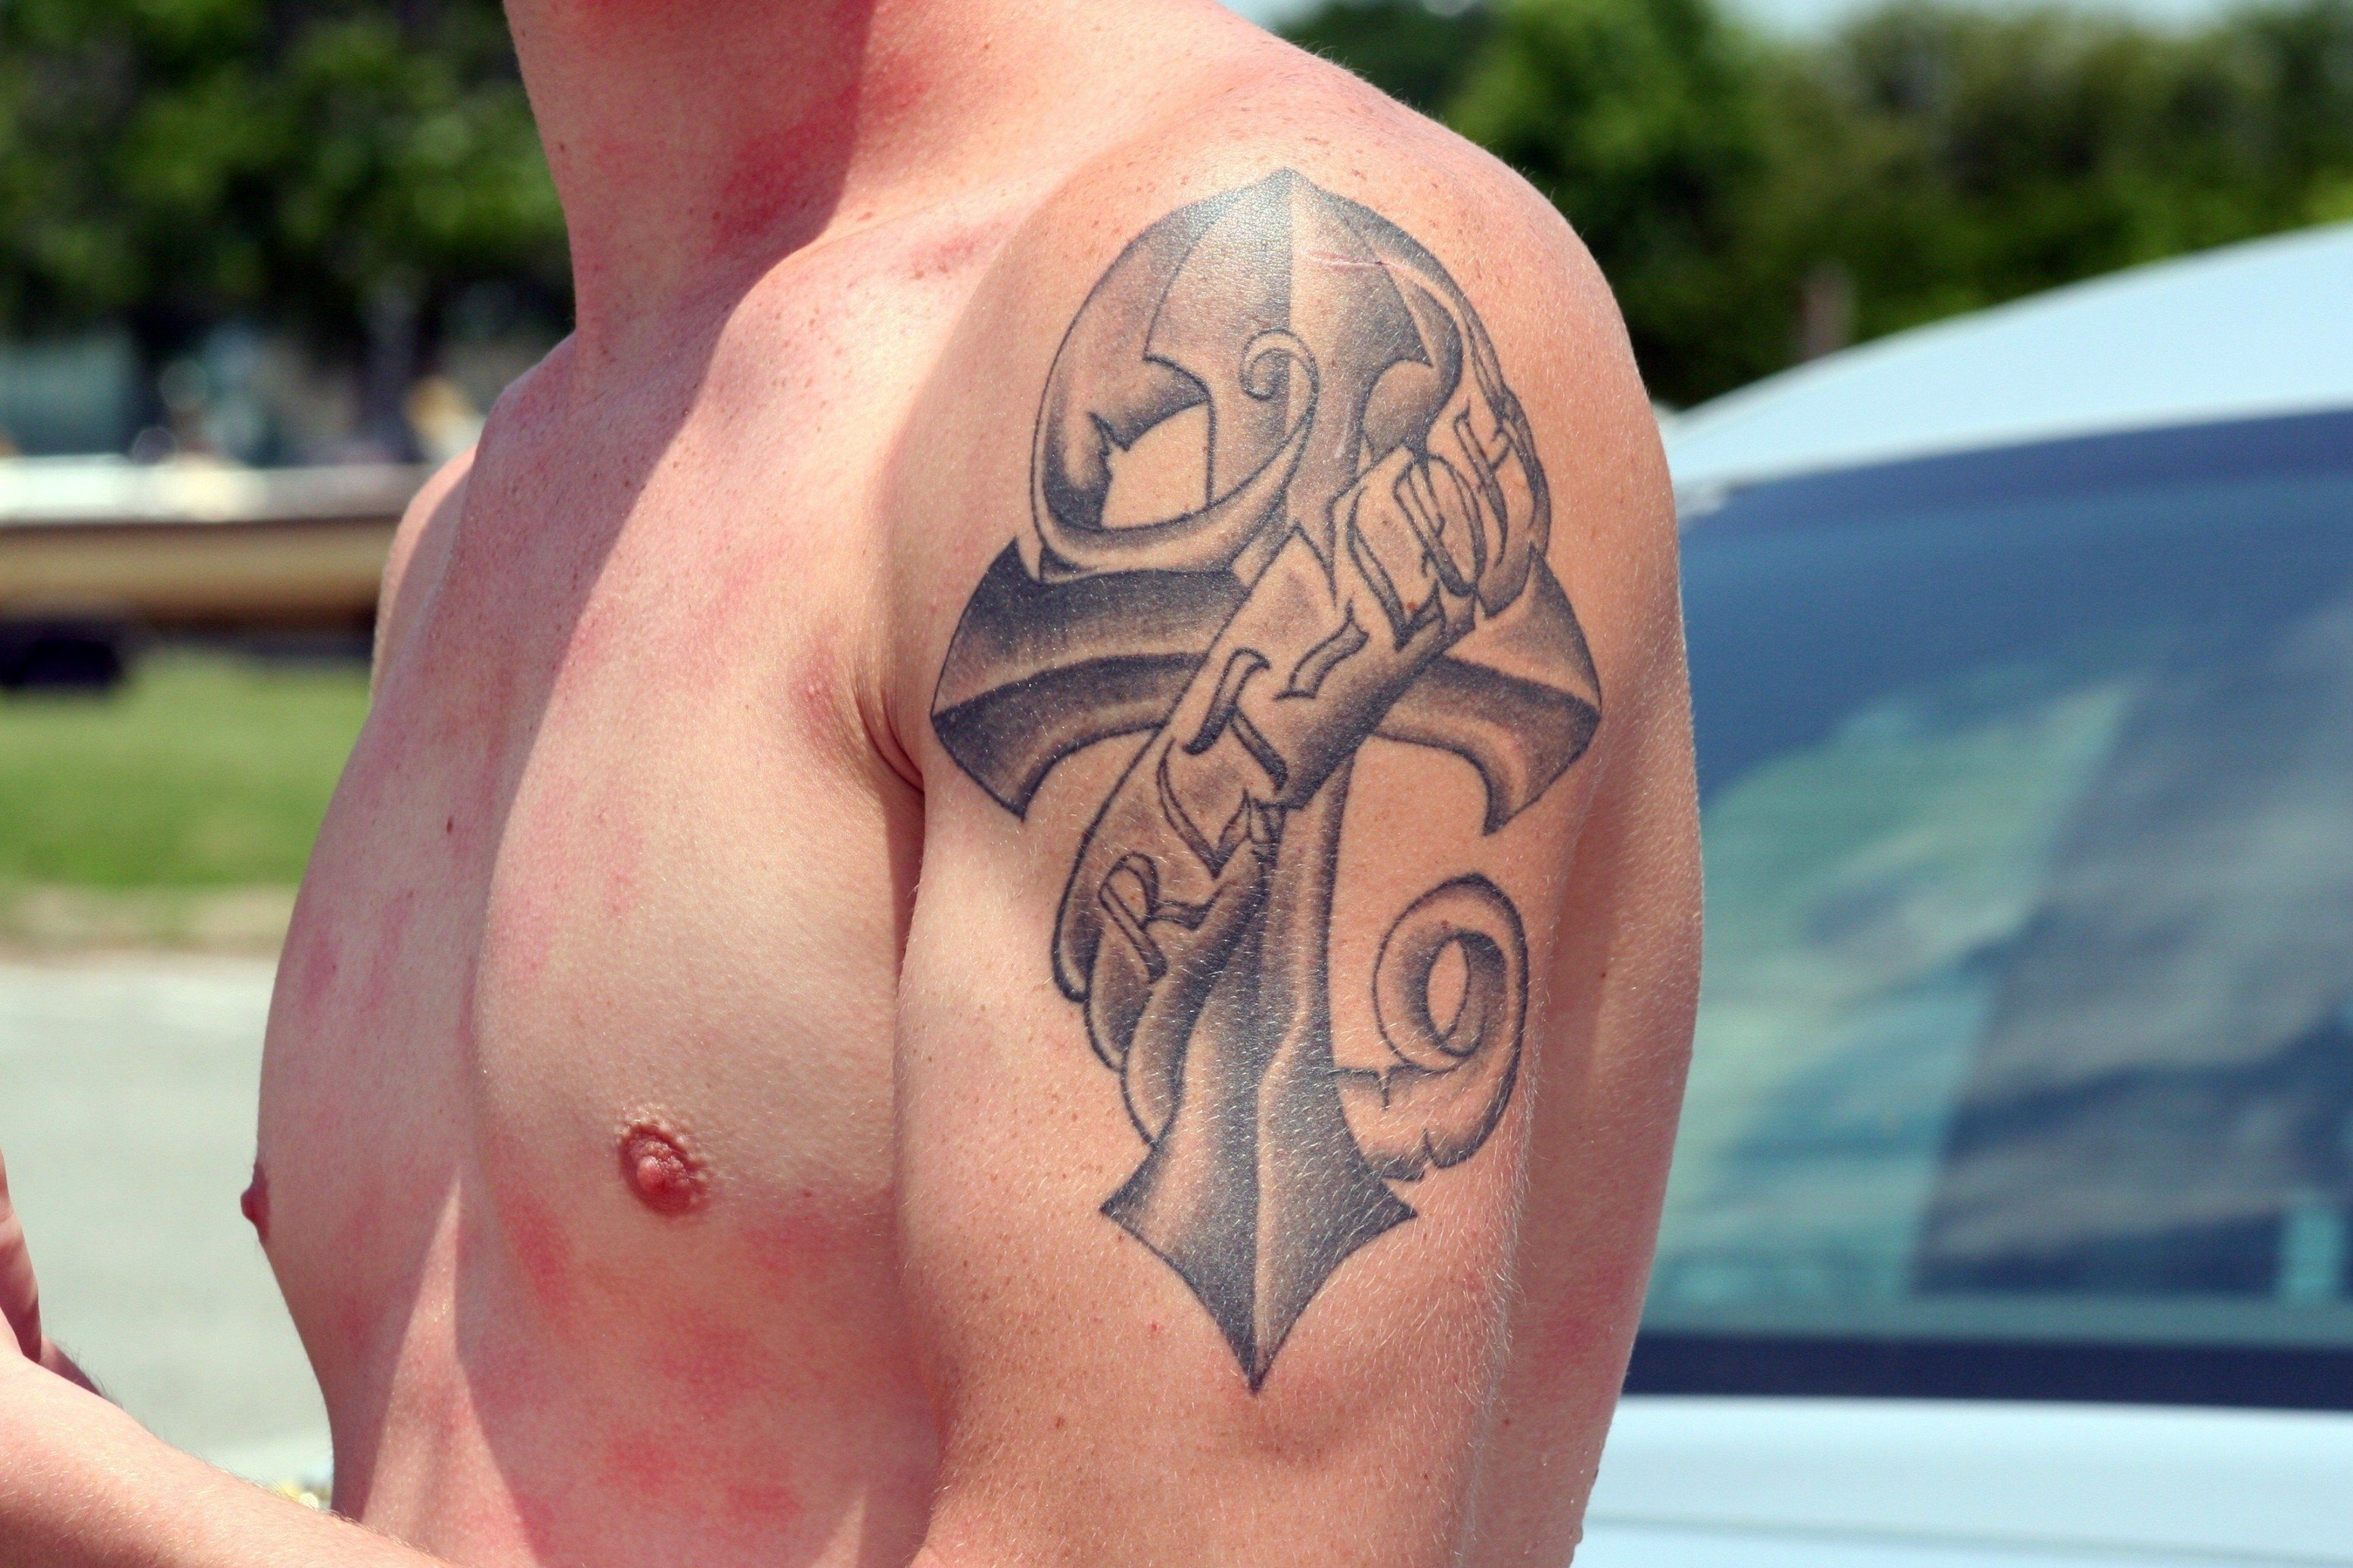 10 Attractive First Tattoo Ideas For Guys cool first tattoo ideas for guys best 33 tattoos for men ideas on 2020